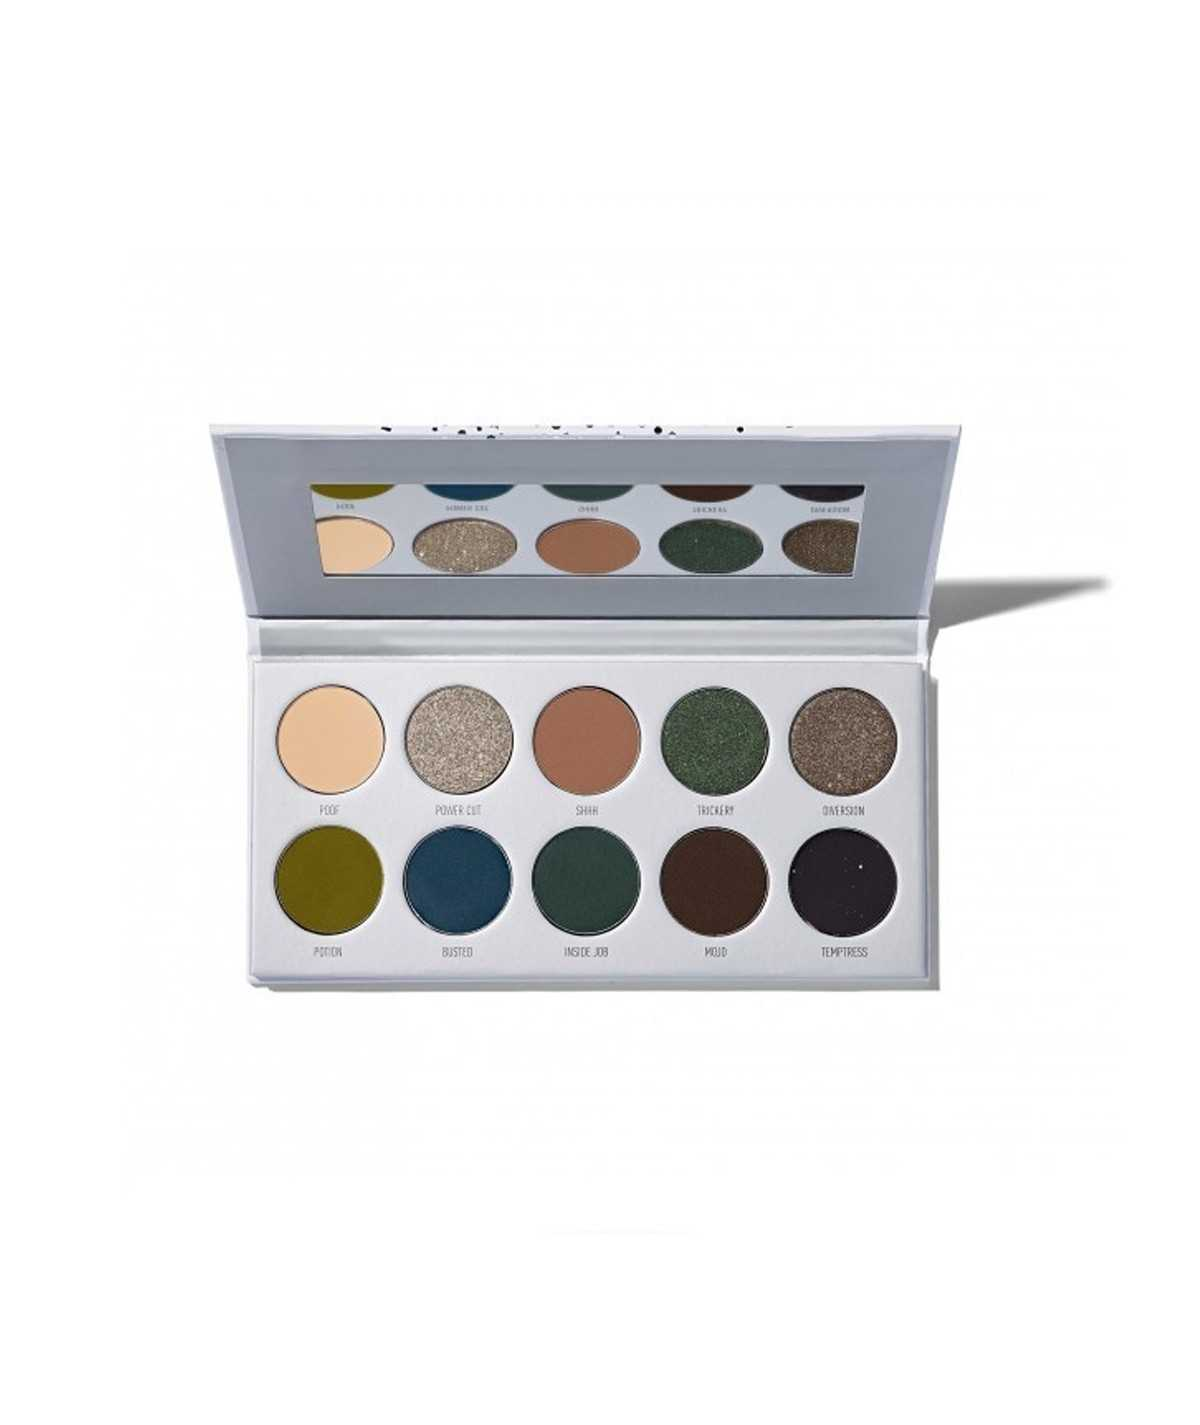 Morphe Jaclyn Hill The Vault Palette - Dark Magic